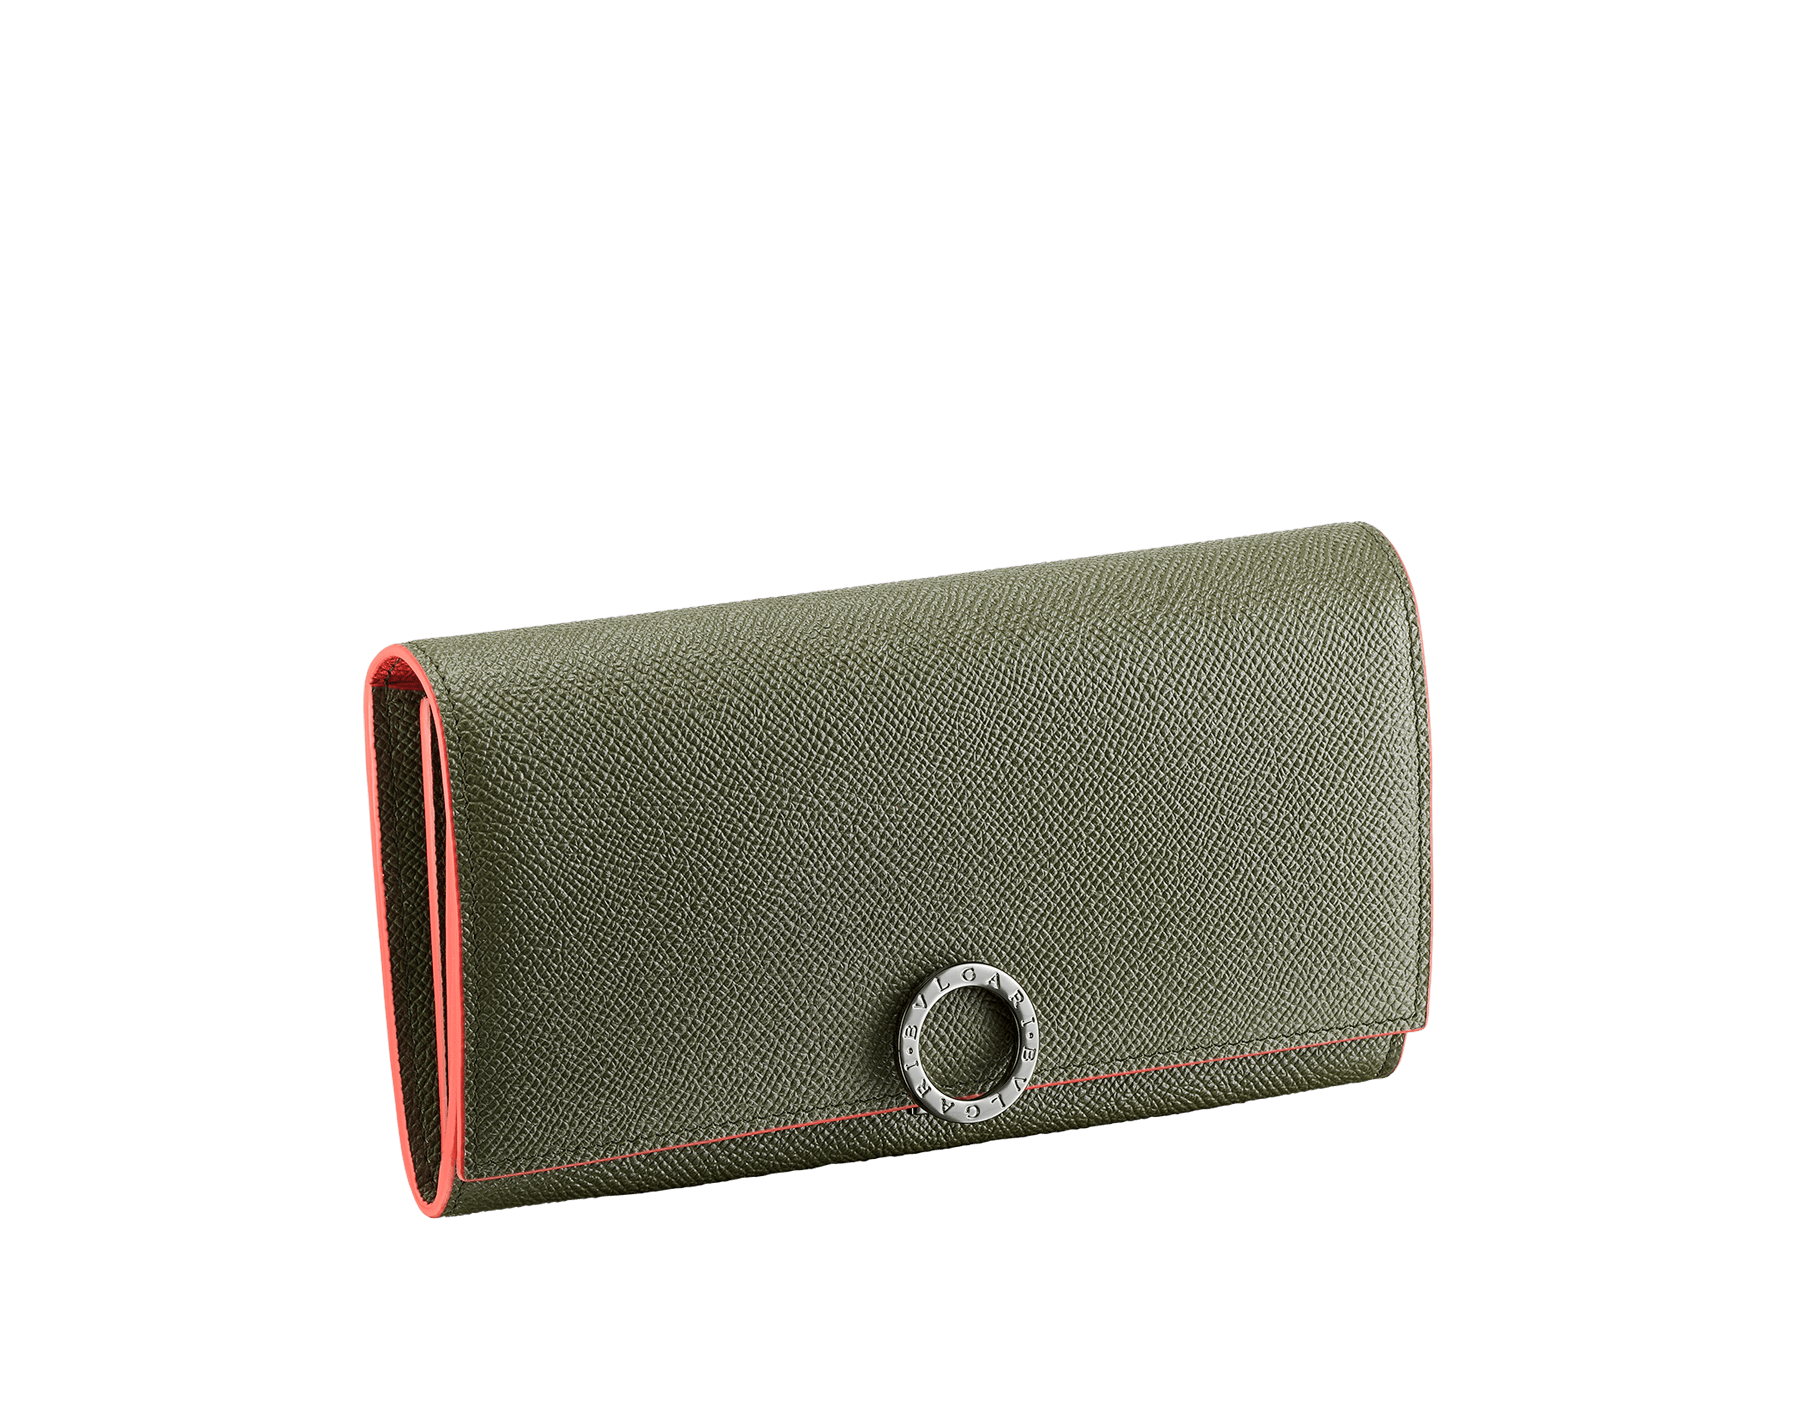 """""""BVLGARI BVLGARI"""" large wallet in mimetic jade and fire amber grain calf leather. Iconic logo clip closure in ruthenium plated brass. 289858 image 1"""